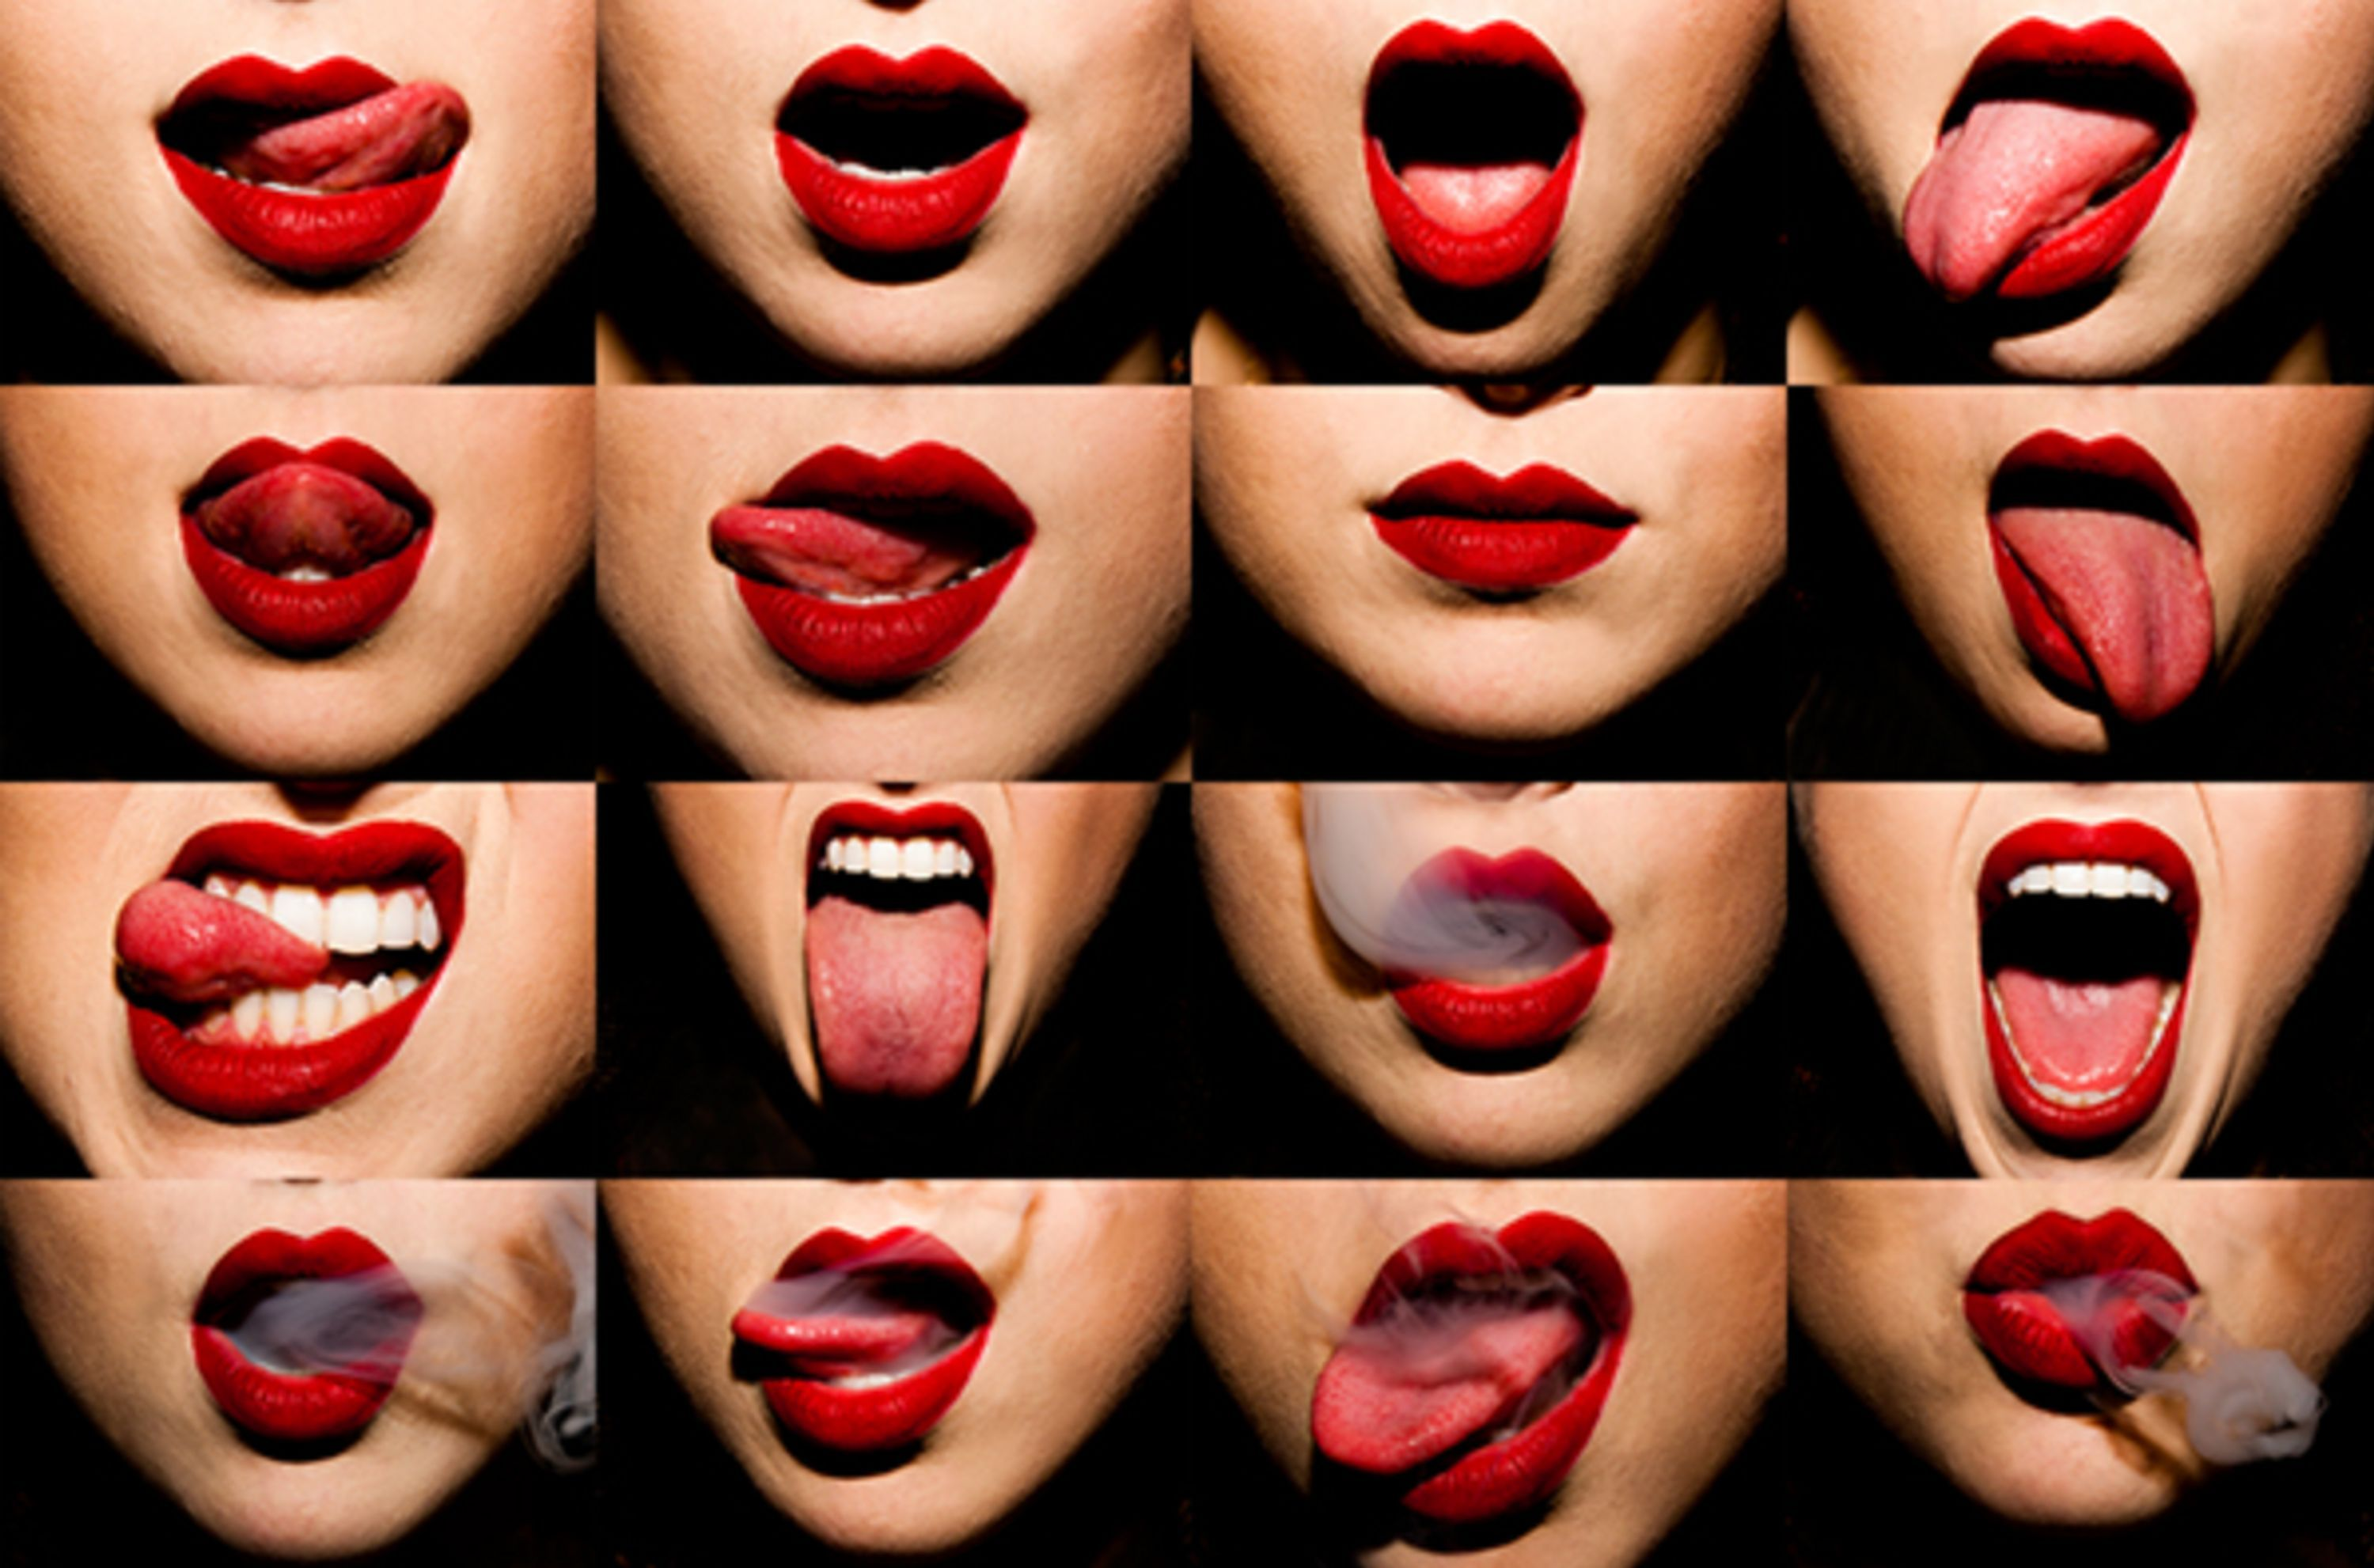 Mouthful by Tyler Shields, Plan X art gallery